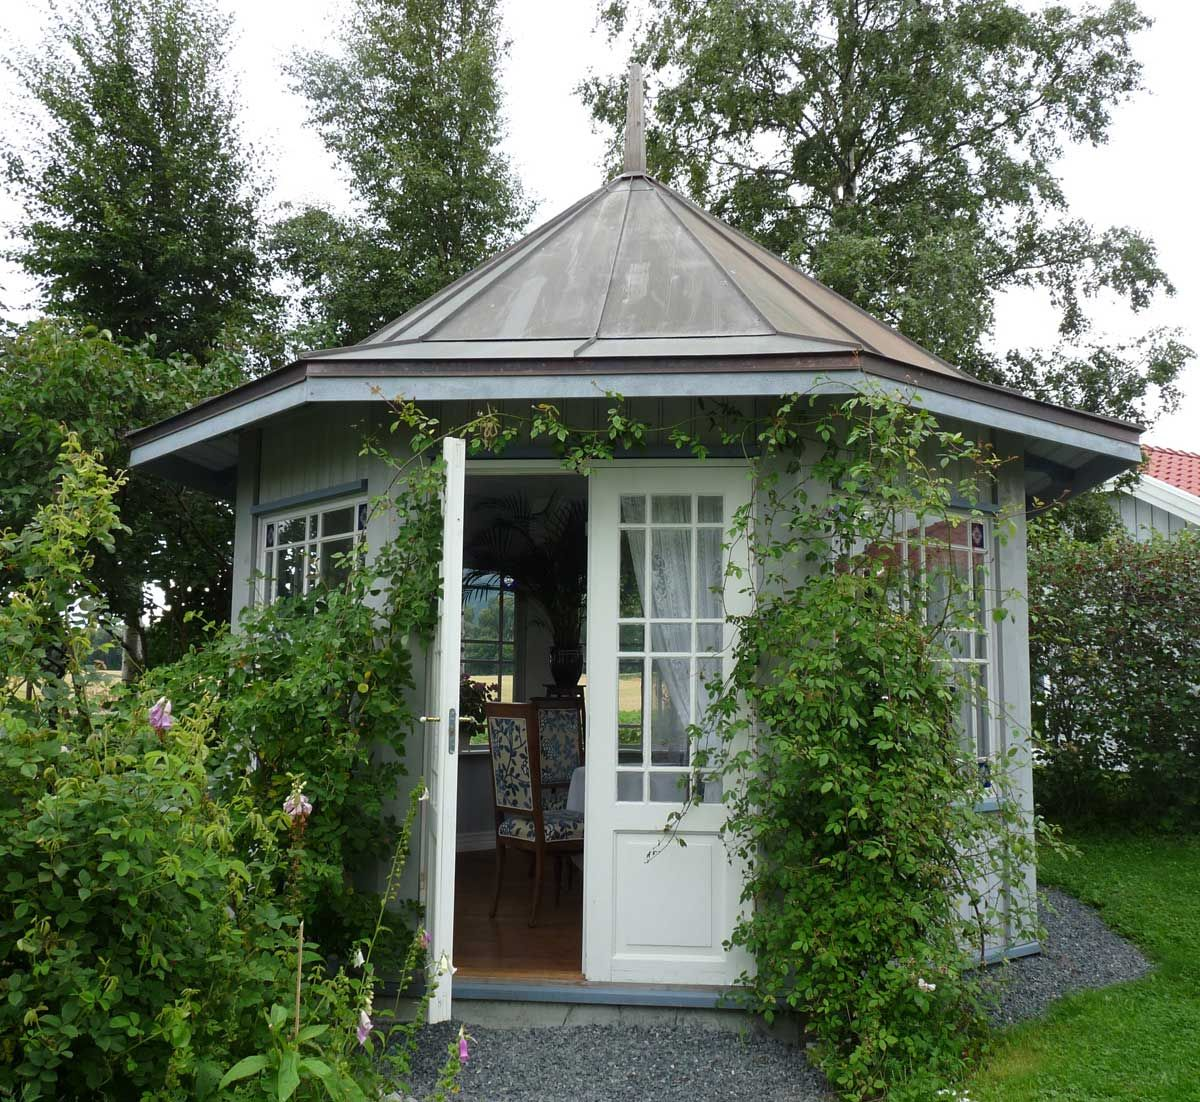 Enclosed Gazebo Creates a Lovely Garden Hideaway… | Garden Buildings ...